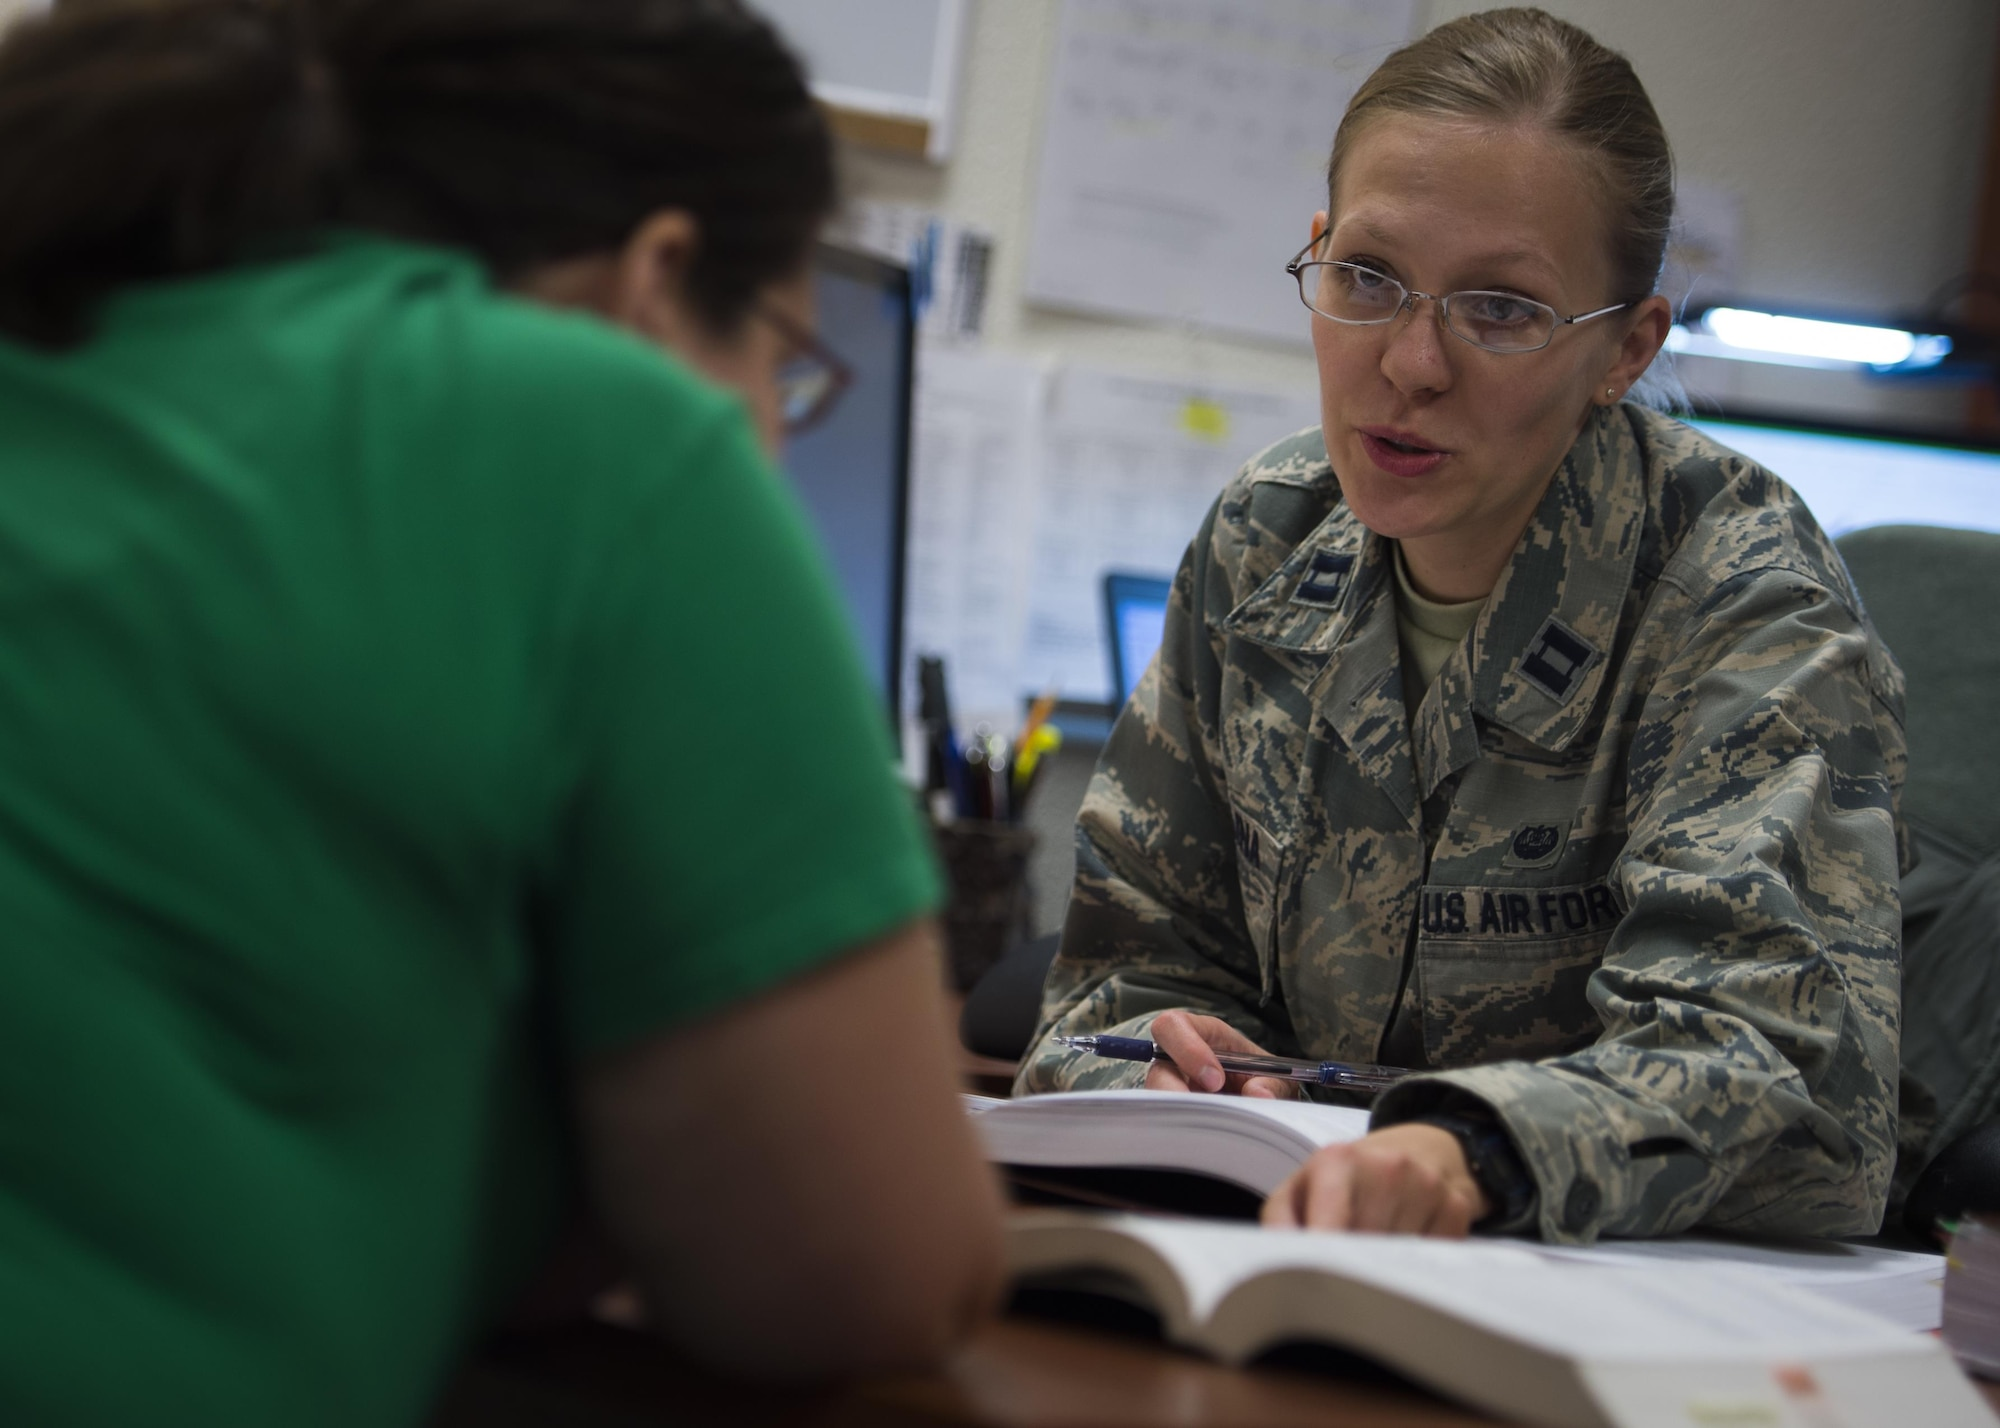 Captain Ekaterina Korulina, the appointed Special Victims Counsel attorney practices her procedures in a controlled environment with stand-in Josephine Brechtold, the Airman and Family Readiness Center family services lead coordinator at Holloman Air Force Base, N.M. The Special Victims Counsel offers confidential legal advice and assistance to sexual assault victims. (U.S. Air Force photo by Senior Airman Aaron Montoya)